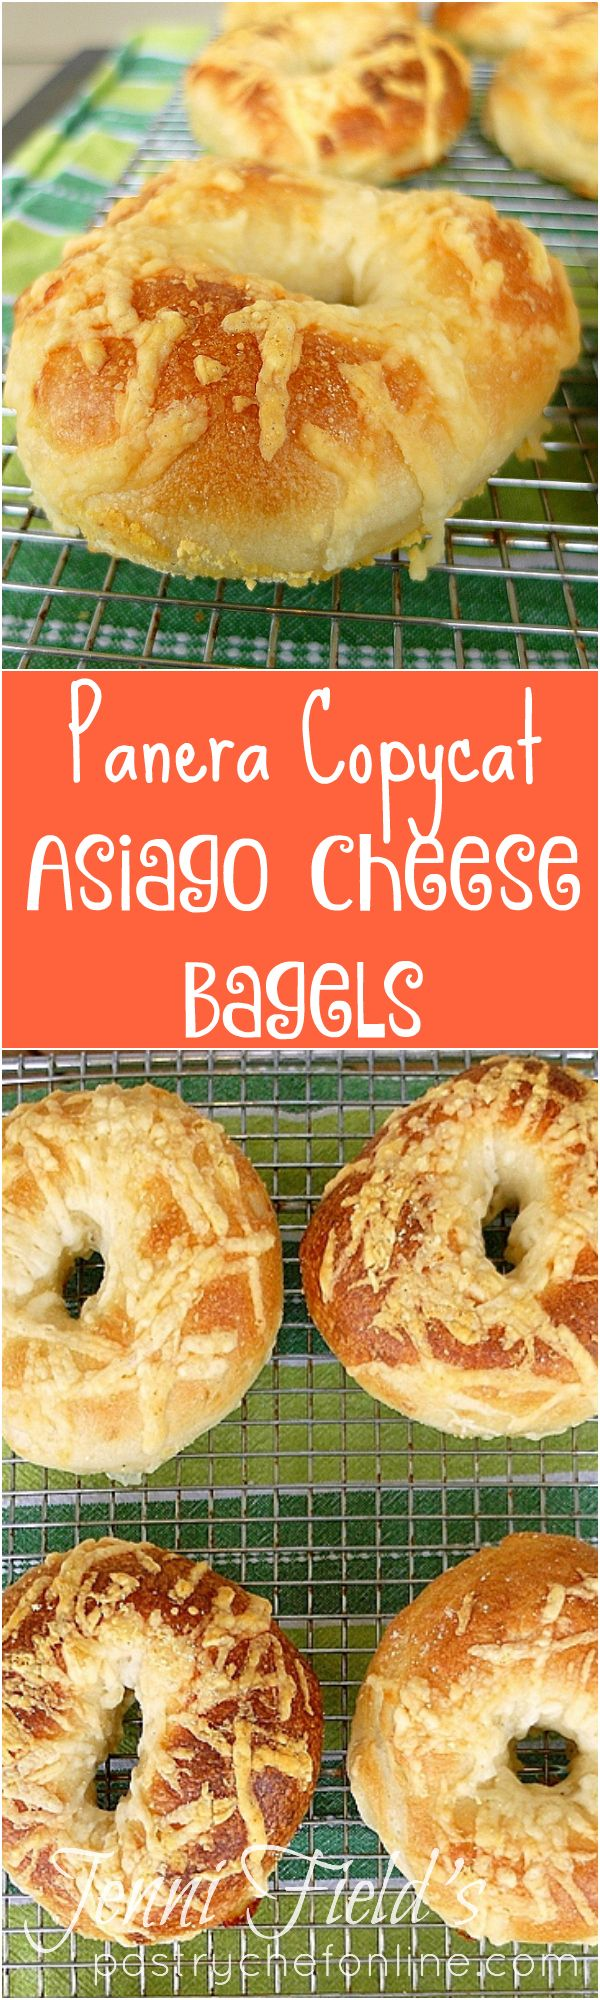 These Panera Copycat Asiago Cheese Bagels Will Satisfy The Bagel Lover In You And The Cheese Lover If You Have Always Wa Recipes Homemade Bagels Bagel Recipe